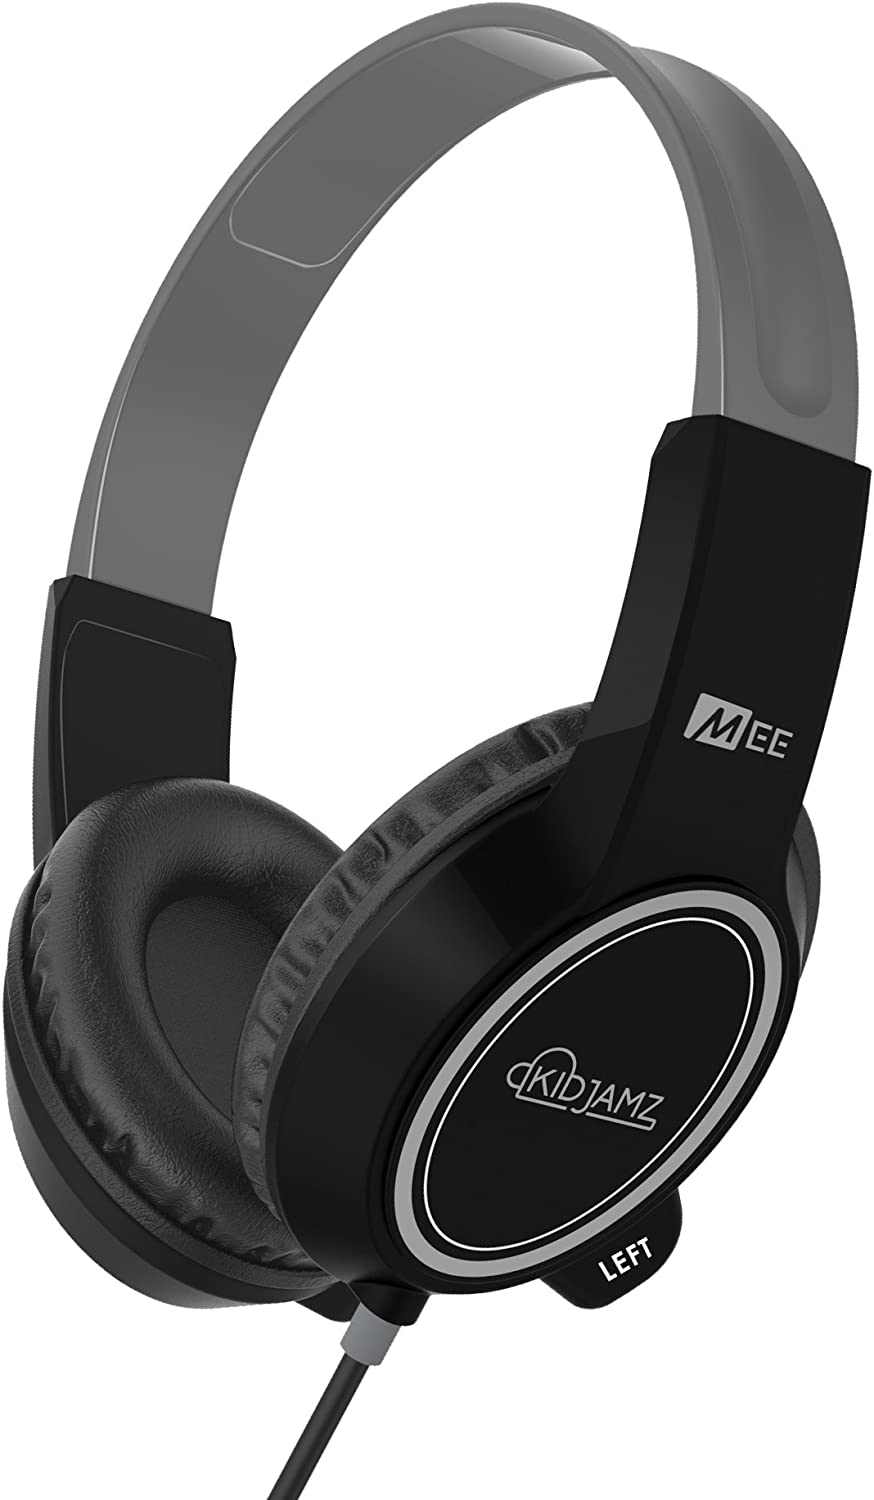 MEE audio KidJamz 3 Child Safe Headphones for Kids with Volume-Limiting Technology (Black) (HP-KJ35-BK-MEE)